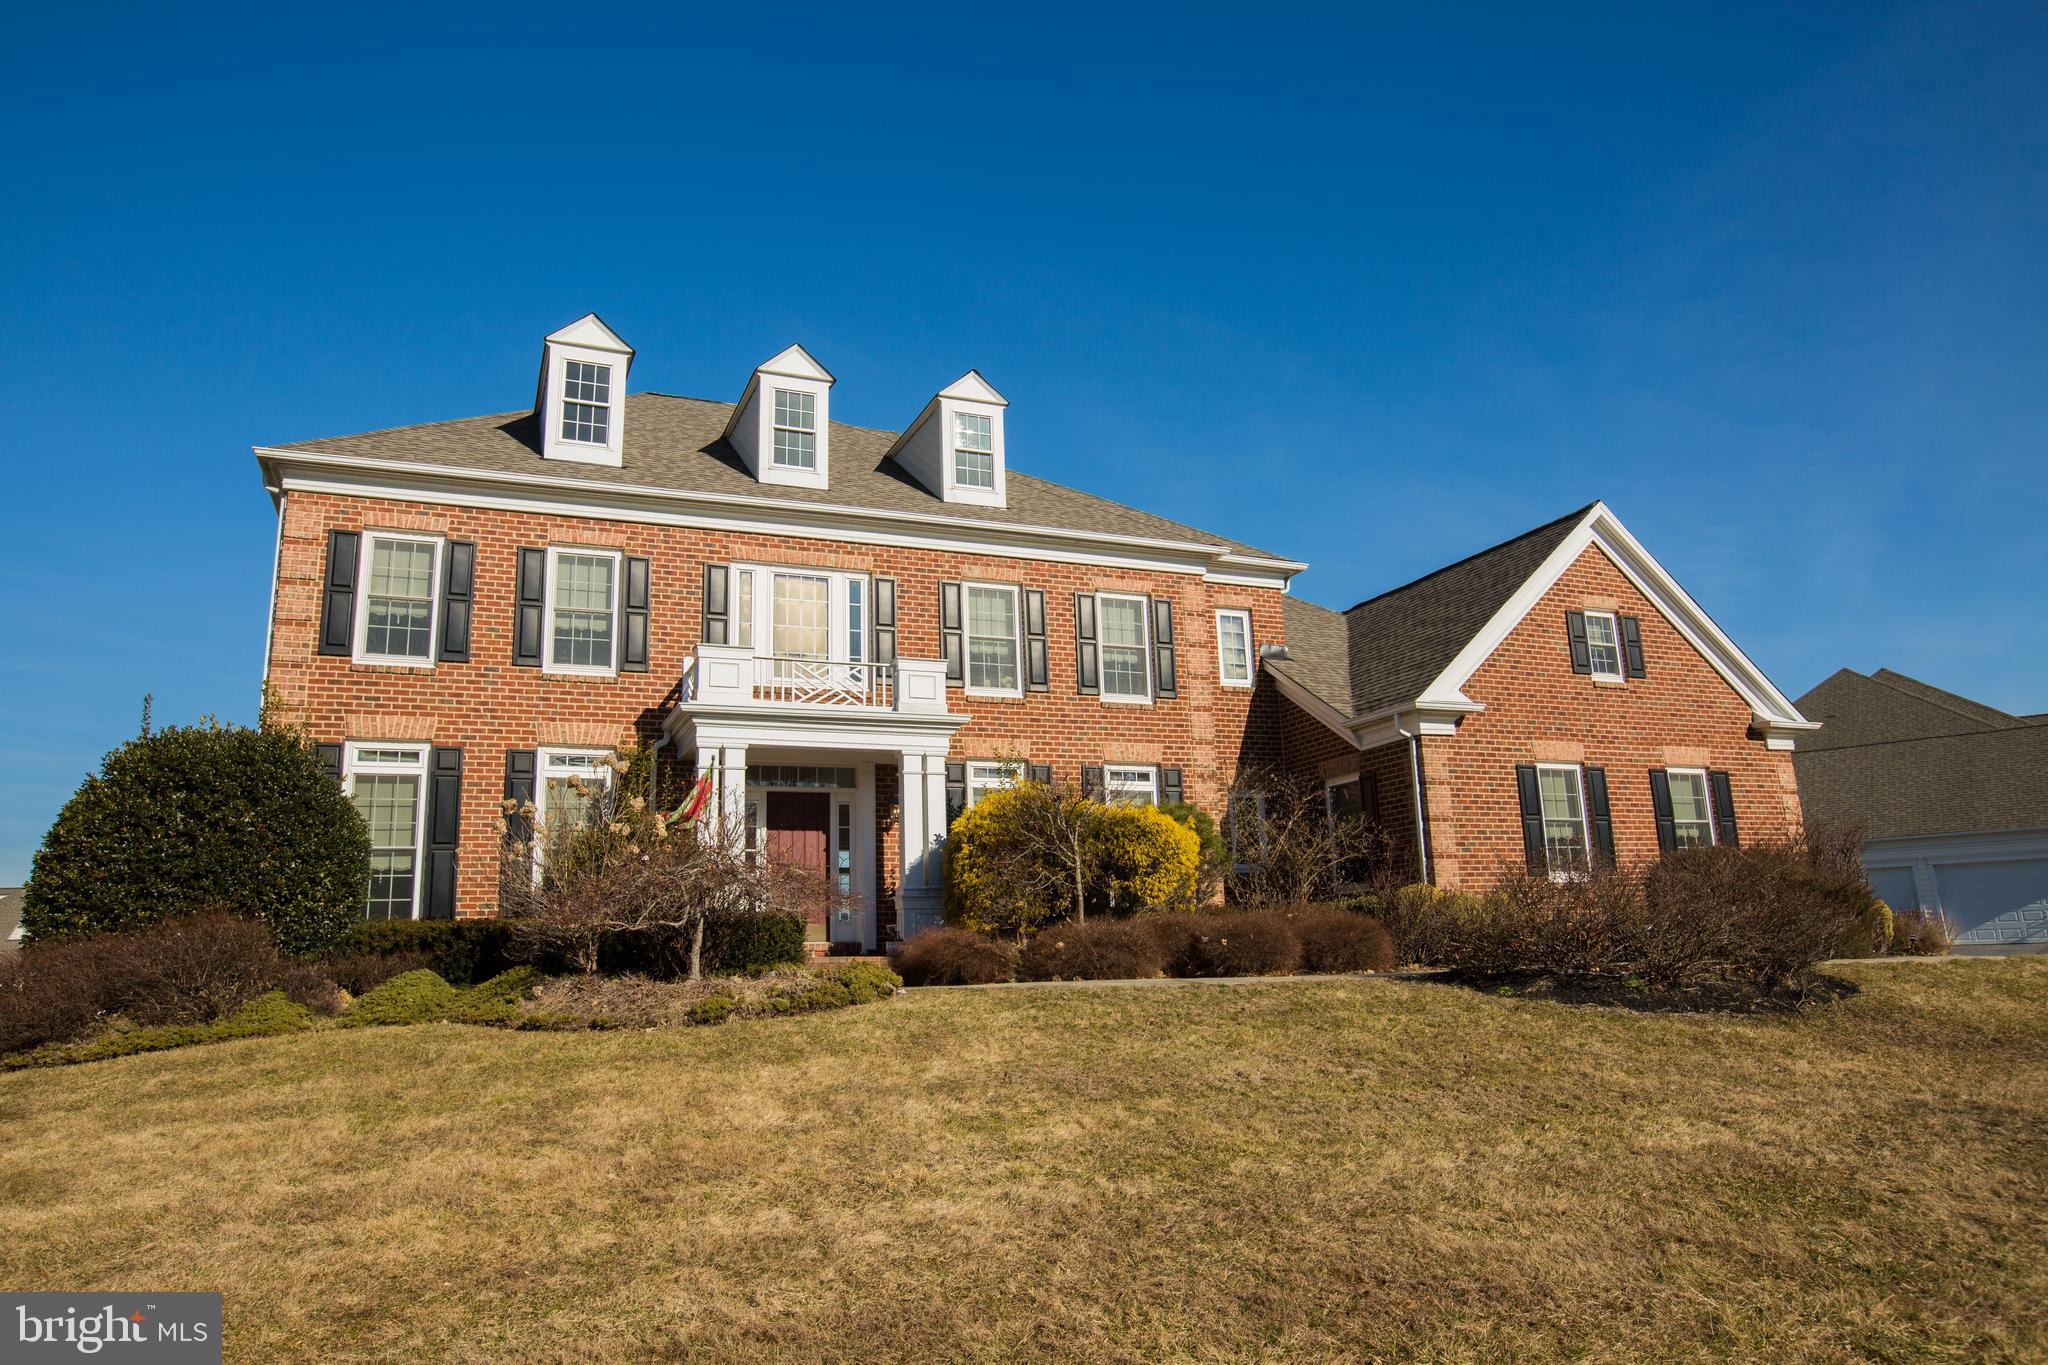 1411 MEADOWSWEET DRIVE, SANDY SPRING, MD 20860